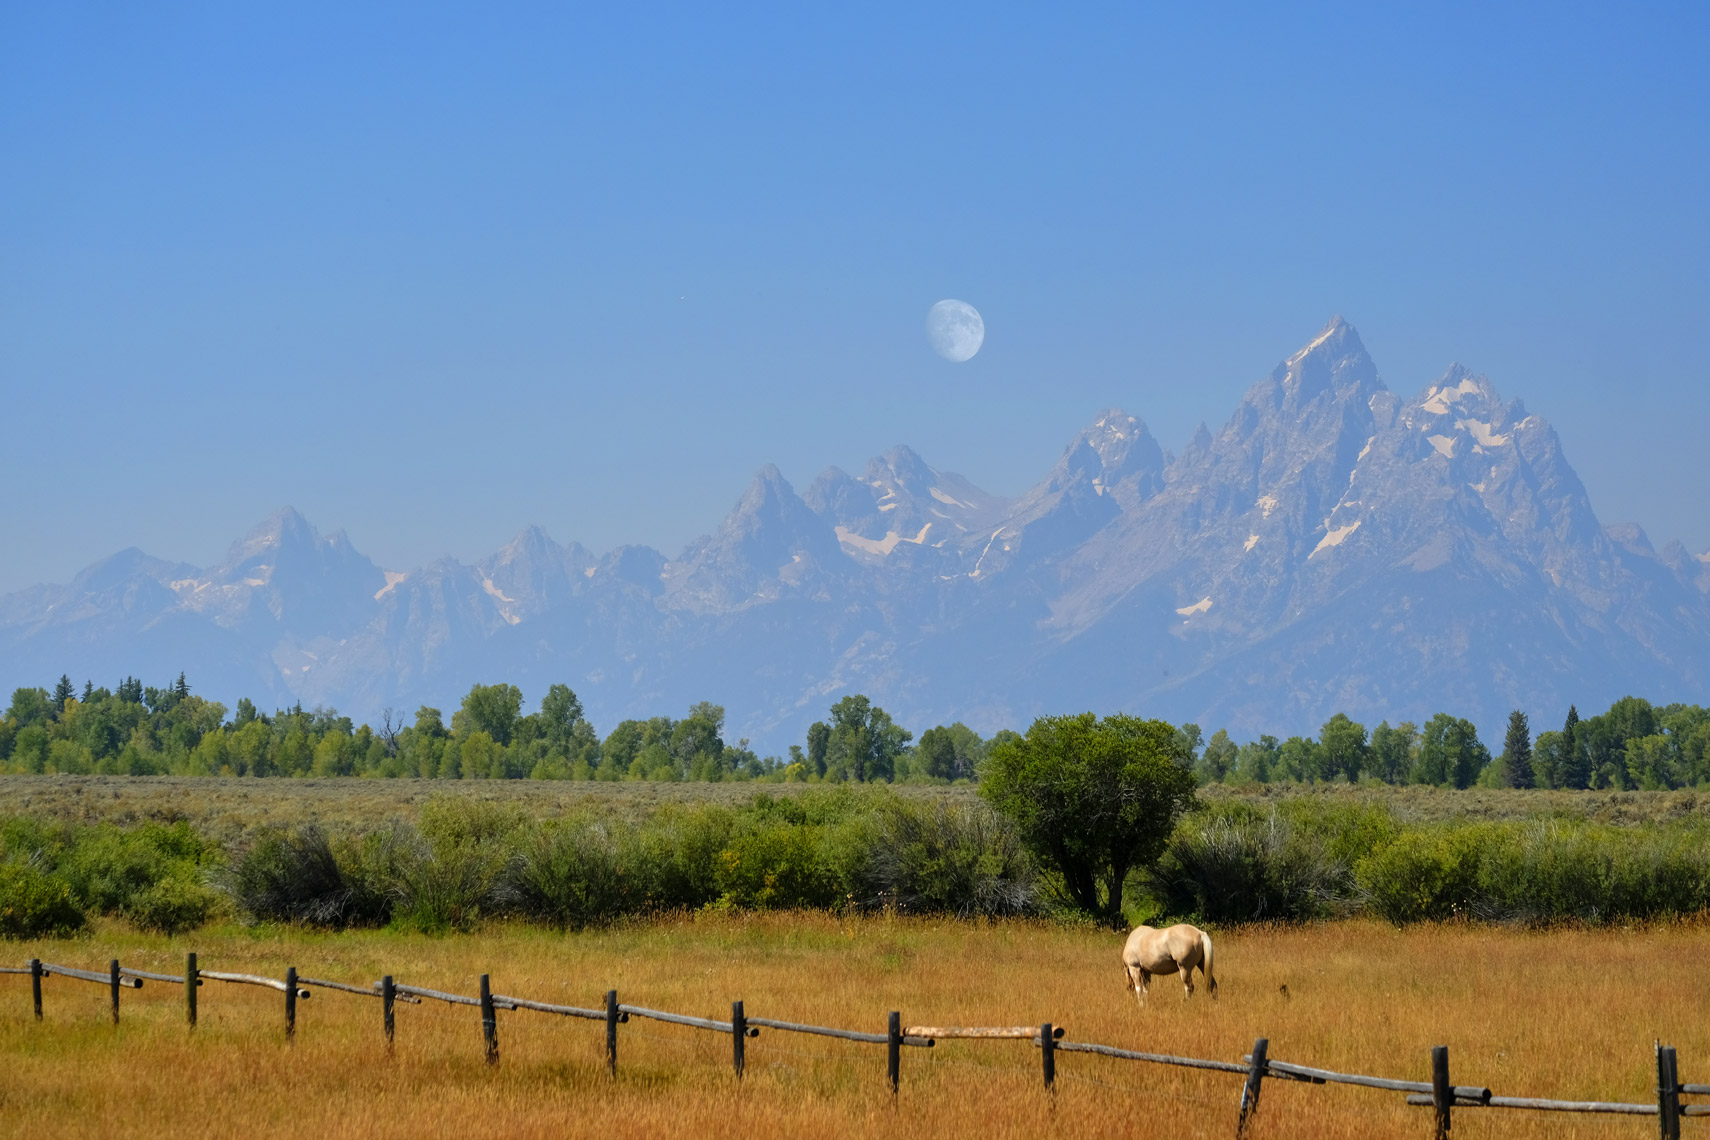 Moonrise in Grand Tetons, Wyoming